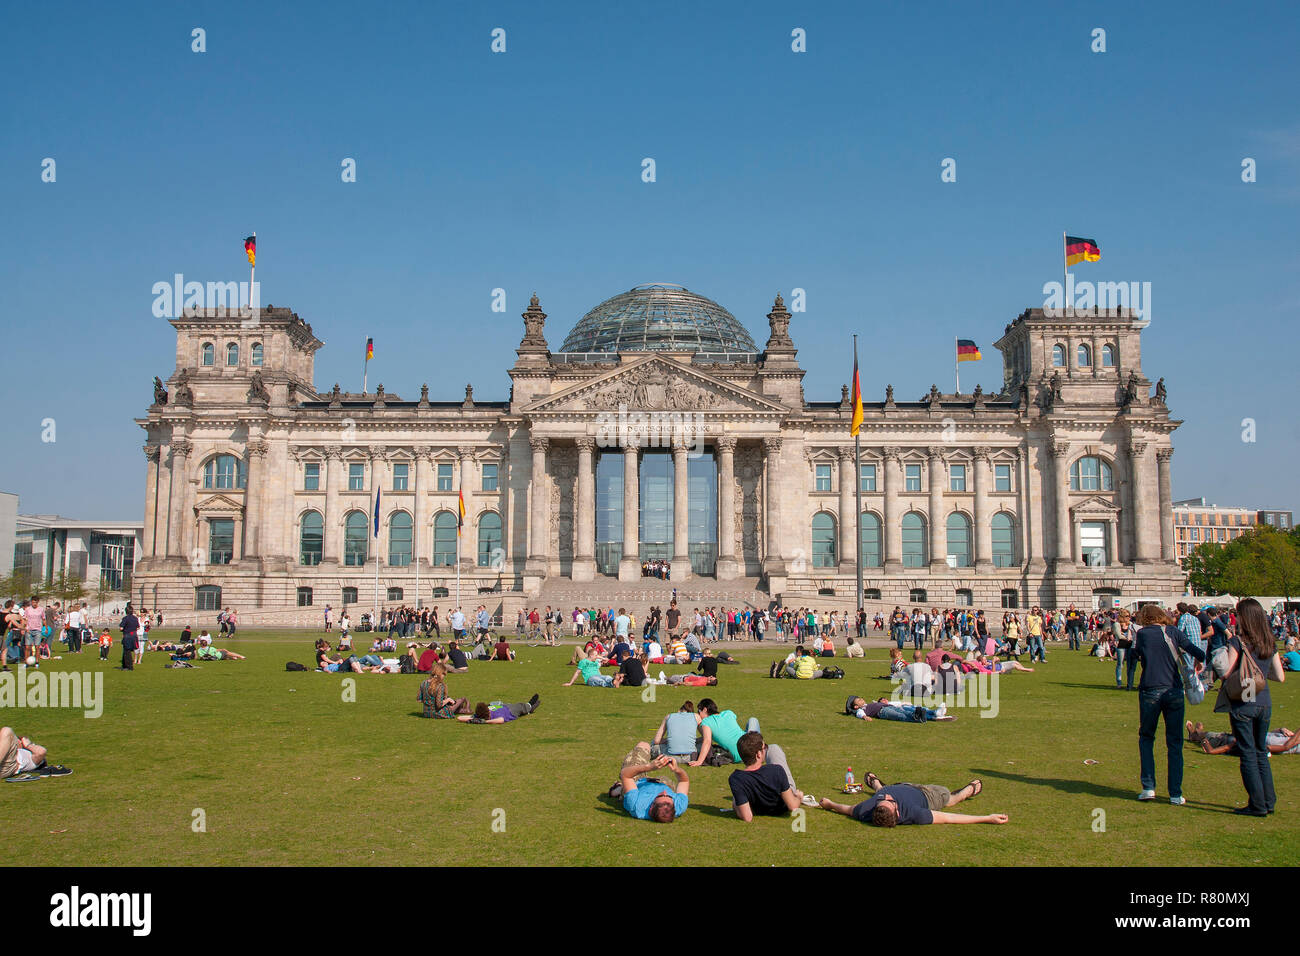 The Reichstag, the seat of the German Parliament, is one of Berlins most historical landmarks. Germany - Stock Image